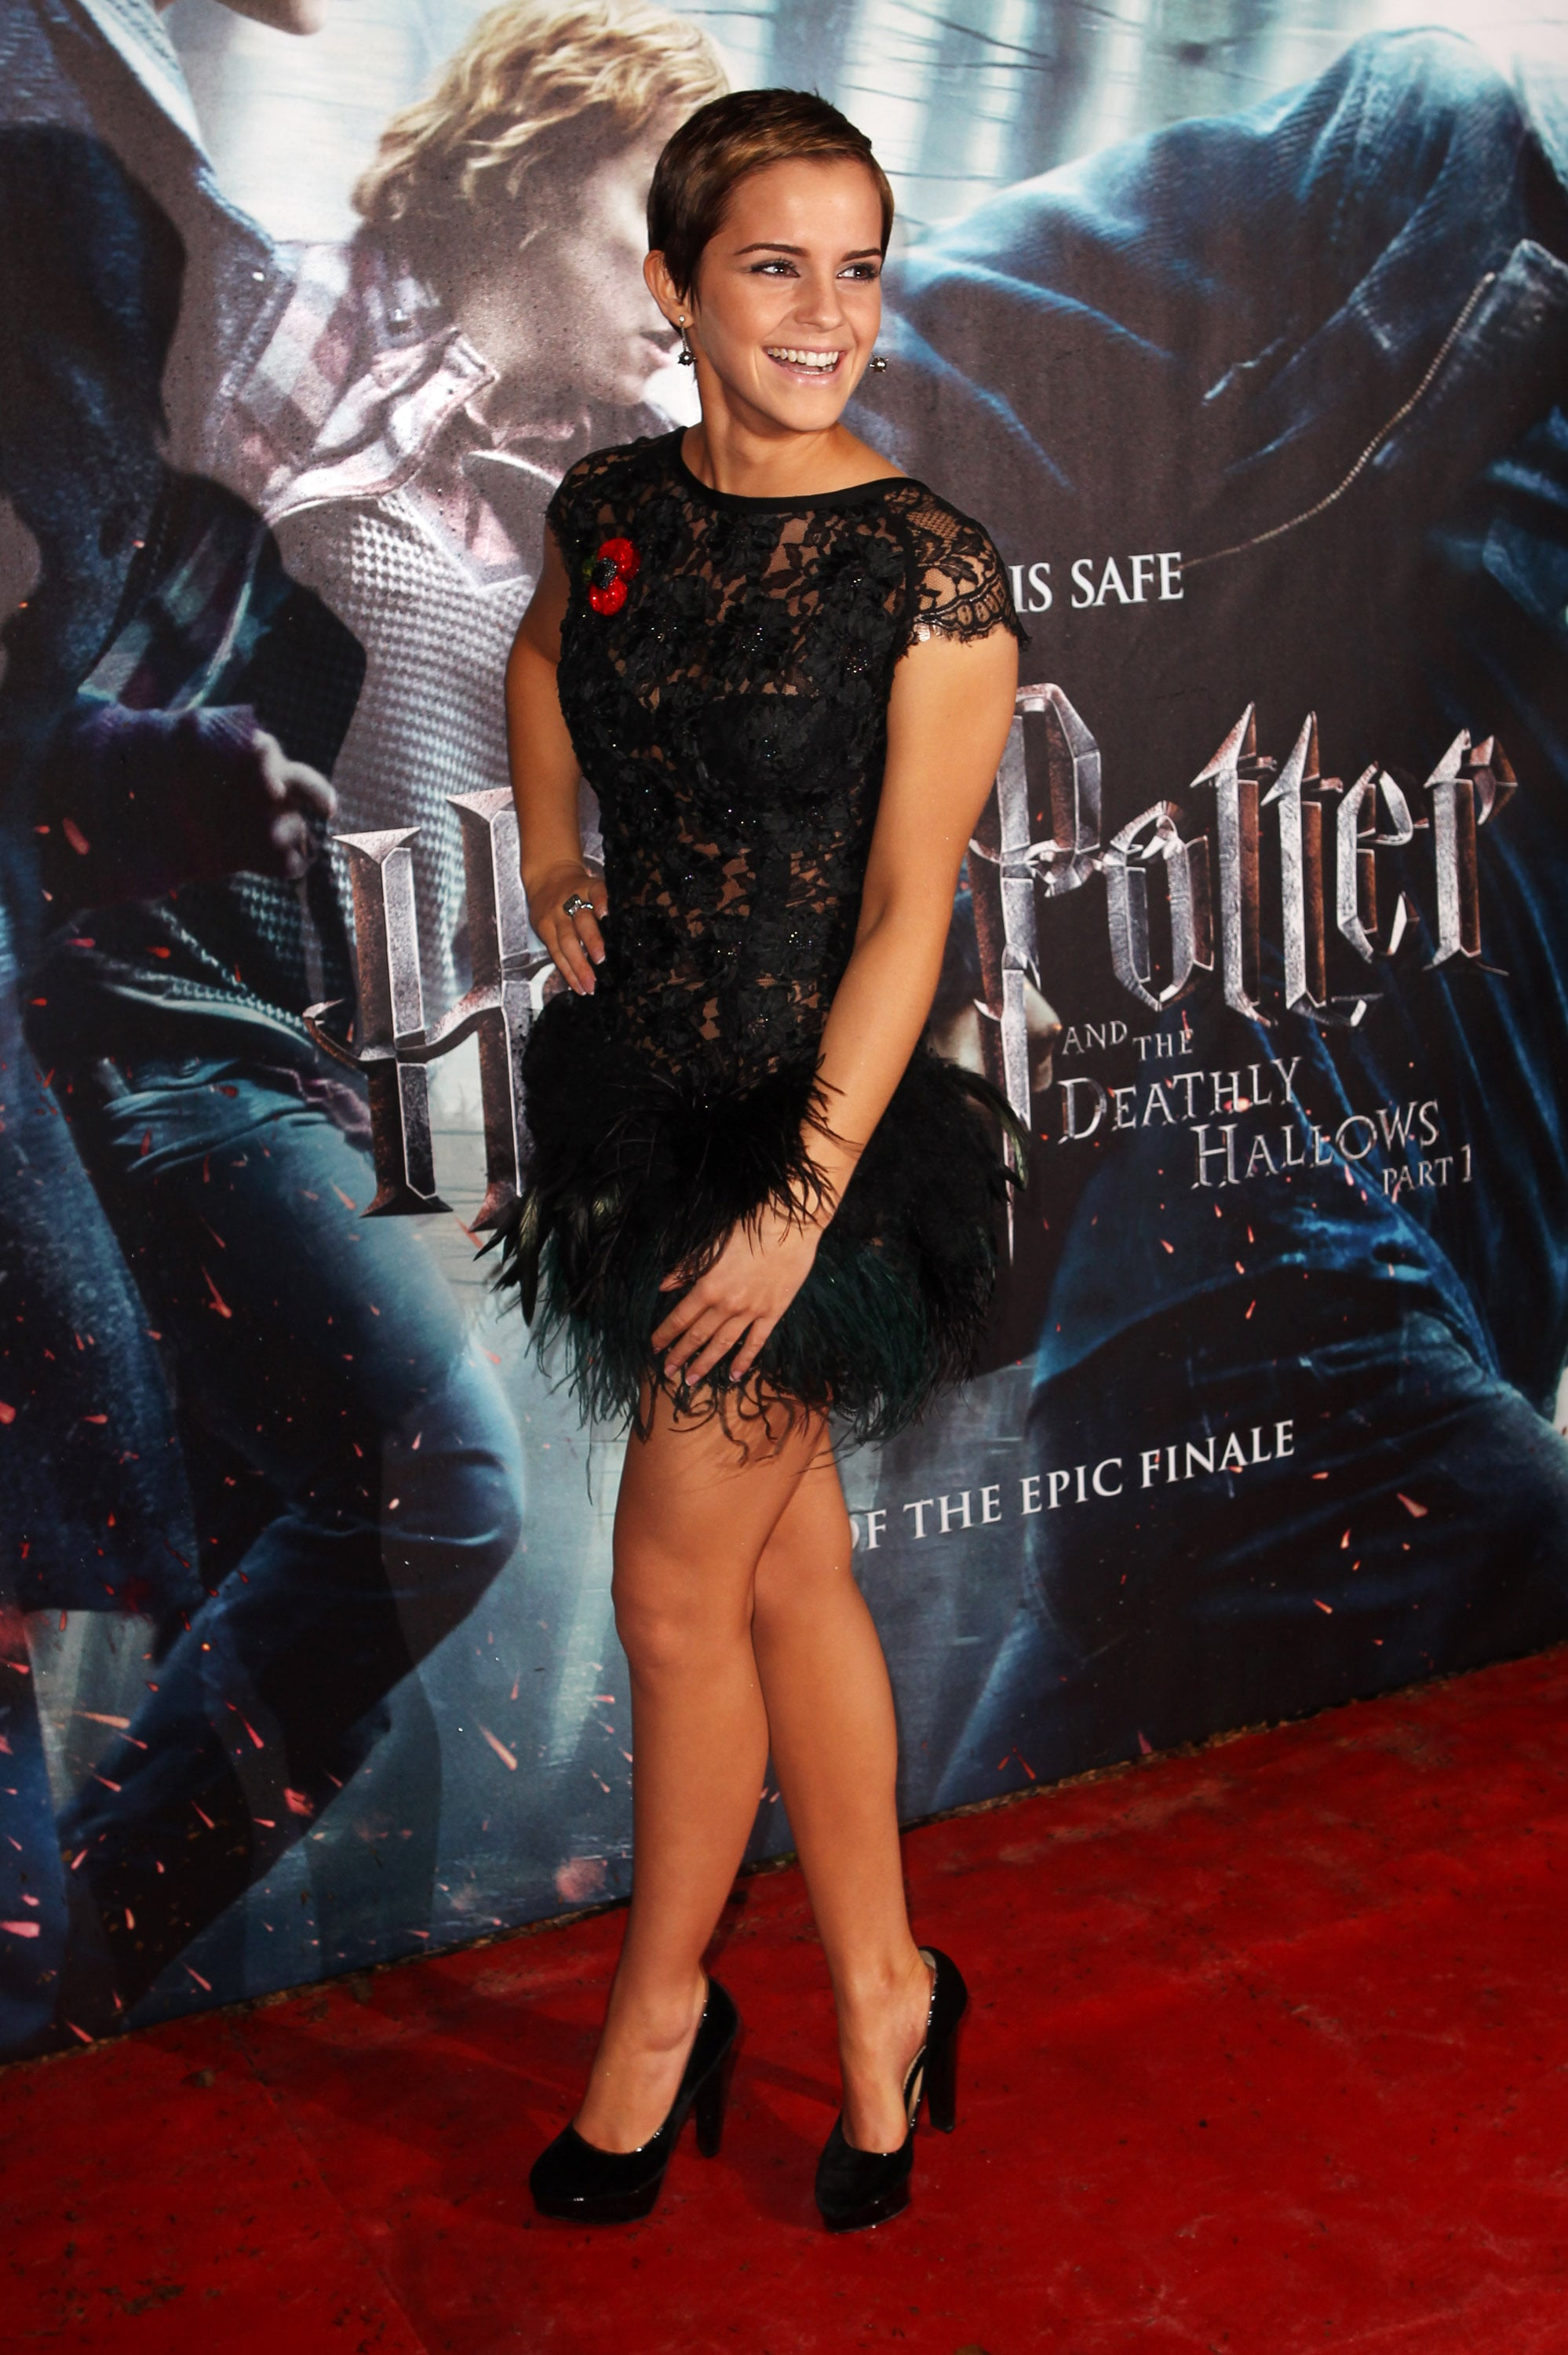 Emma Watson Harry Potter And The Deathly Hallows Part 2 Premiere Dress Emma Watson, Ru...